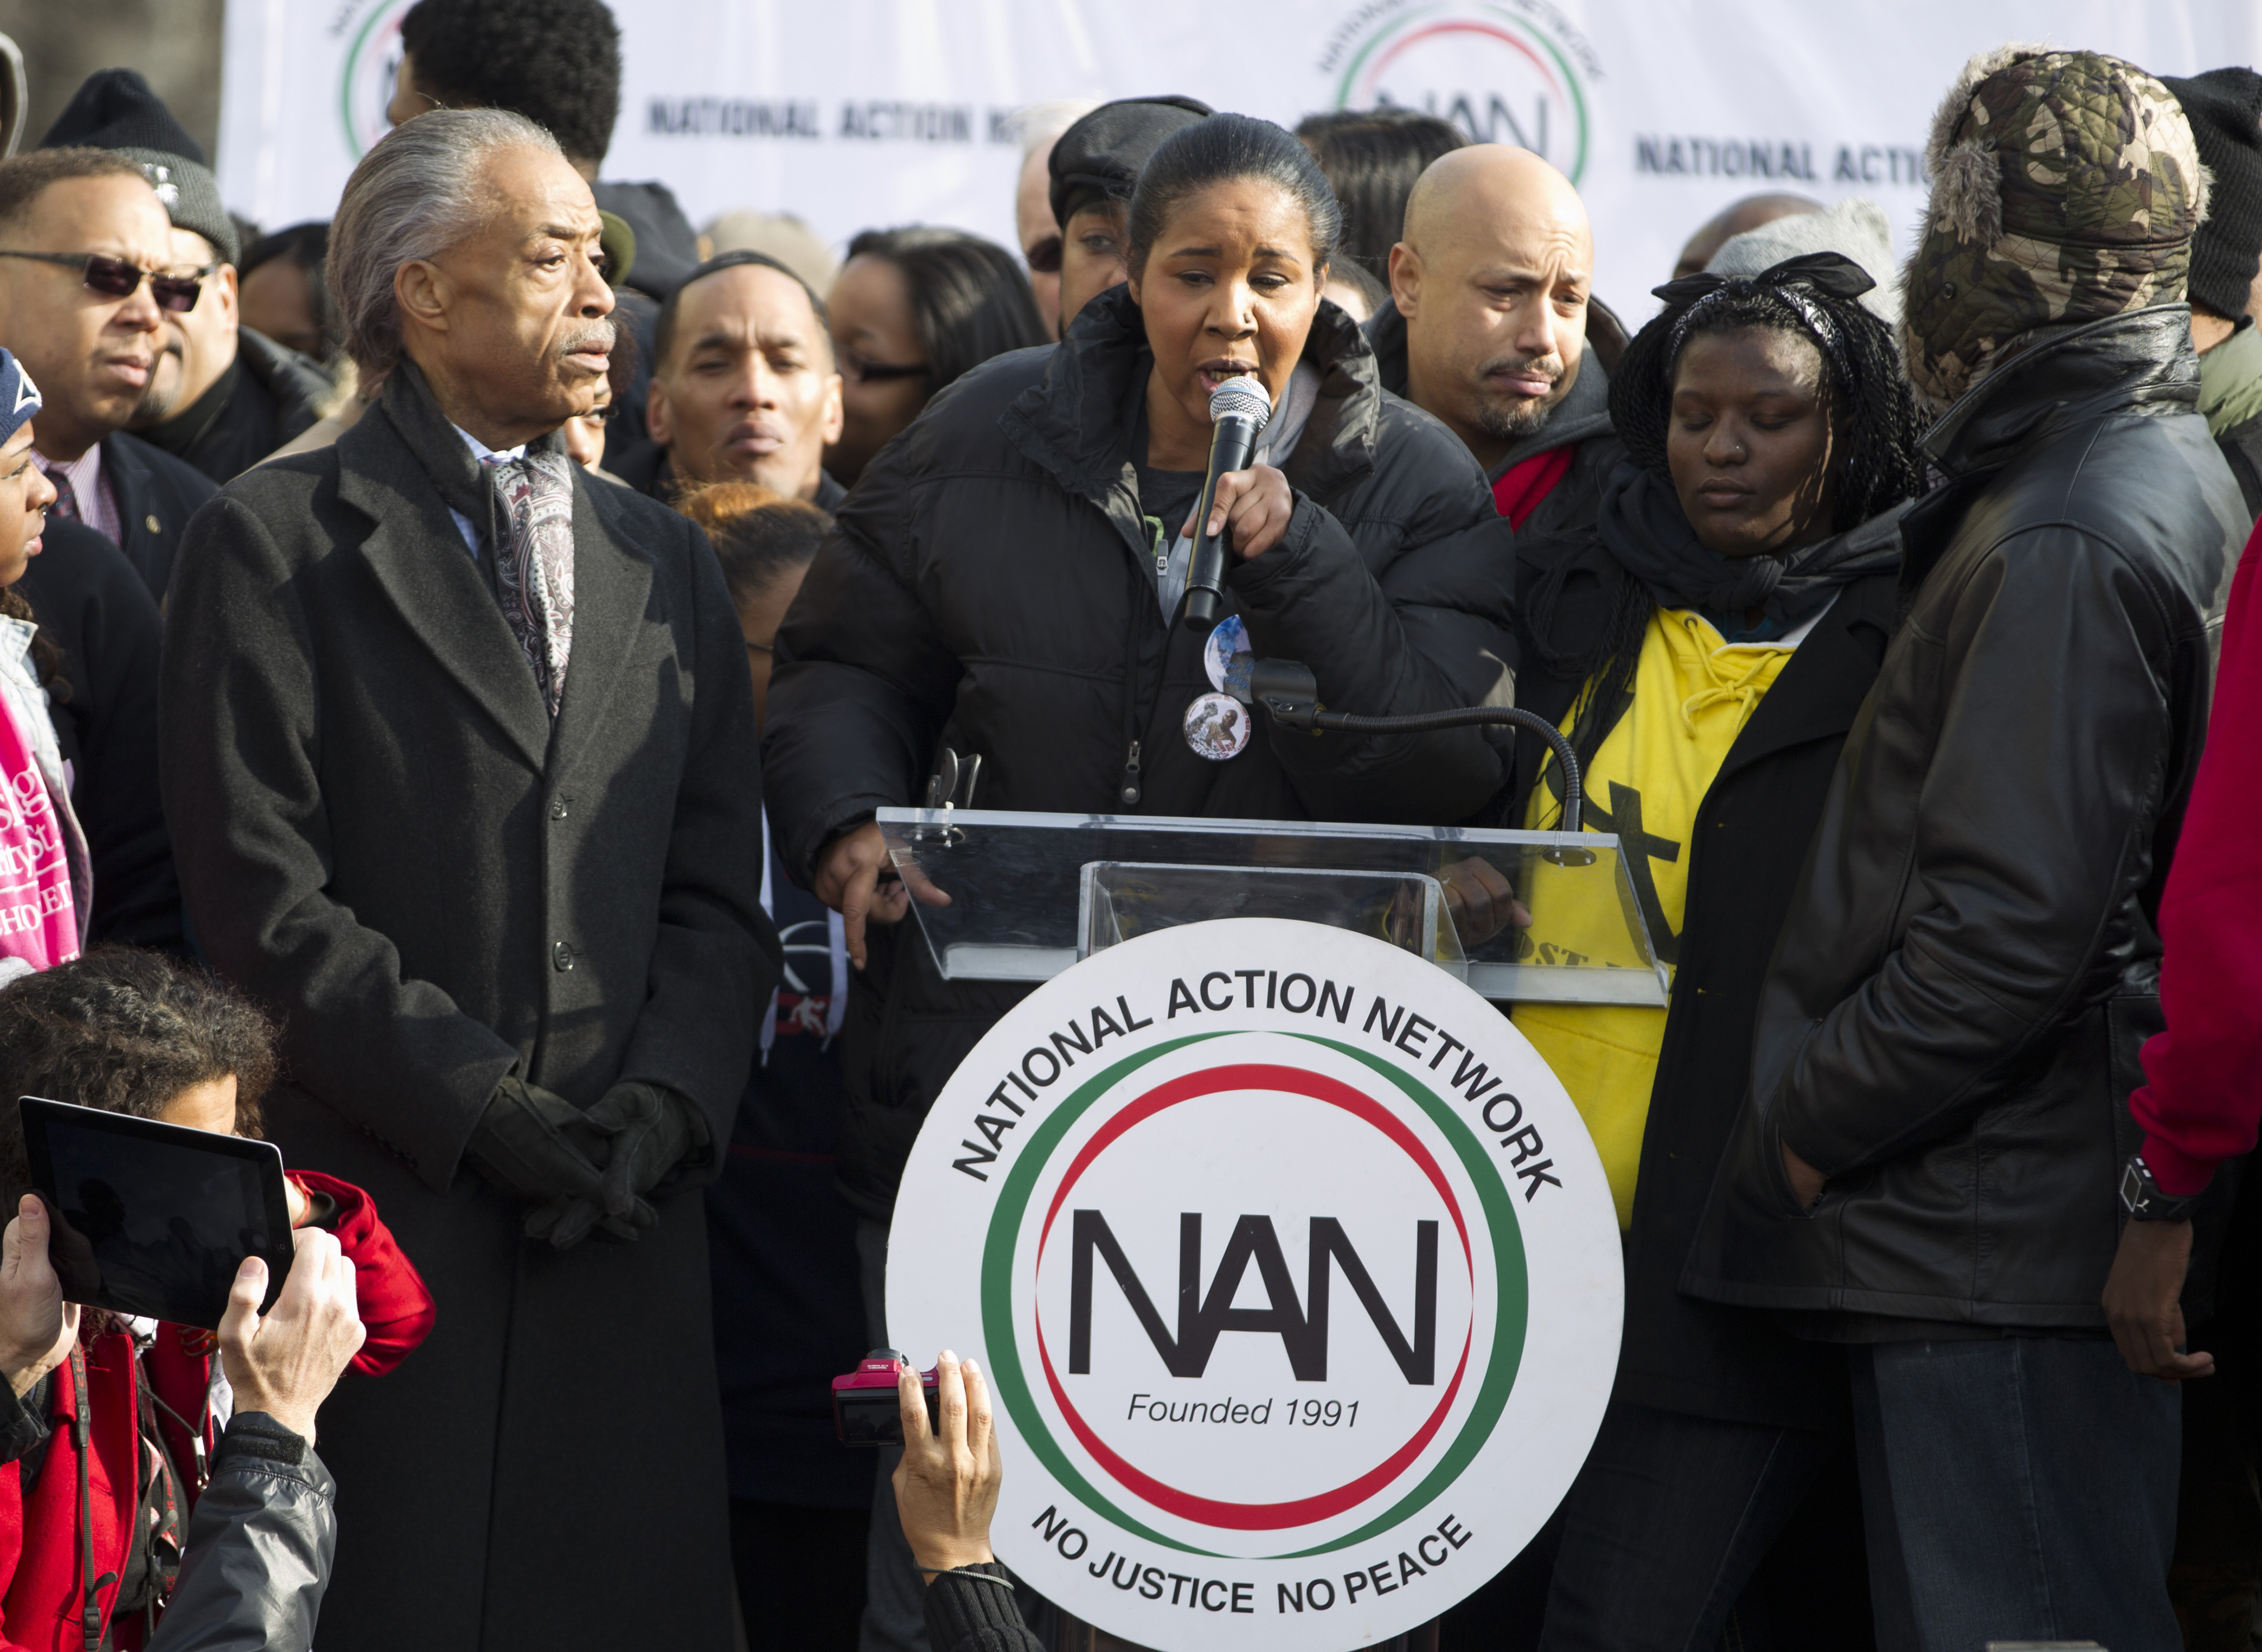 The Reverend Al Sharpton, left, listens as Eric Garner's widow Esaw speaks during a demonstration at Freedom Plaza in Washington, Dec. 13, 2014.